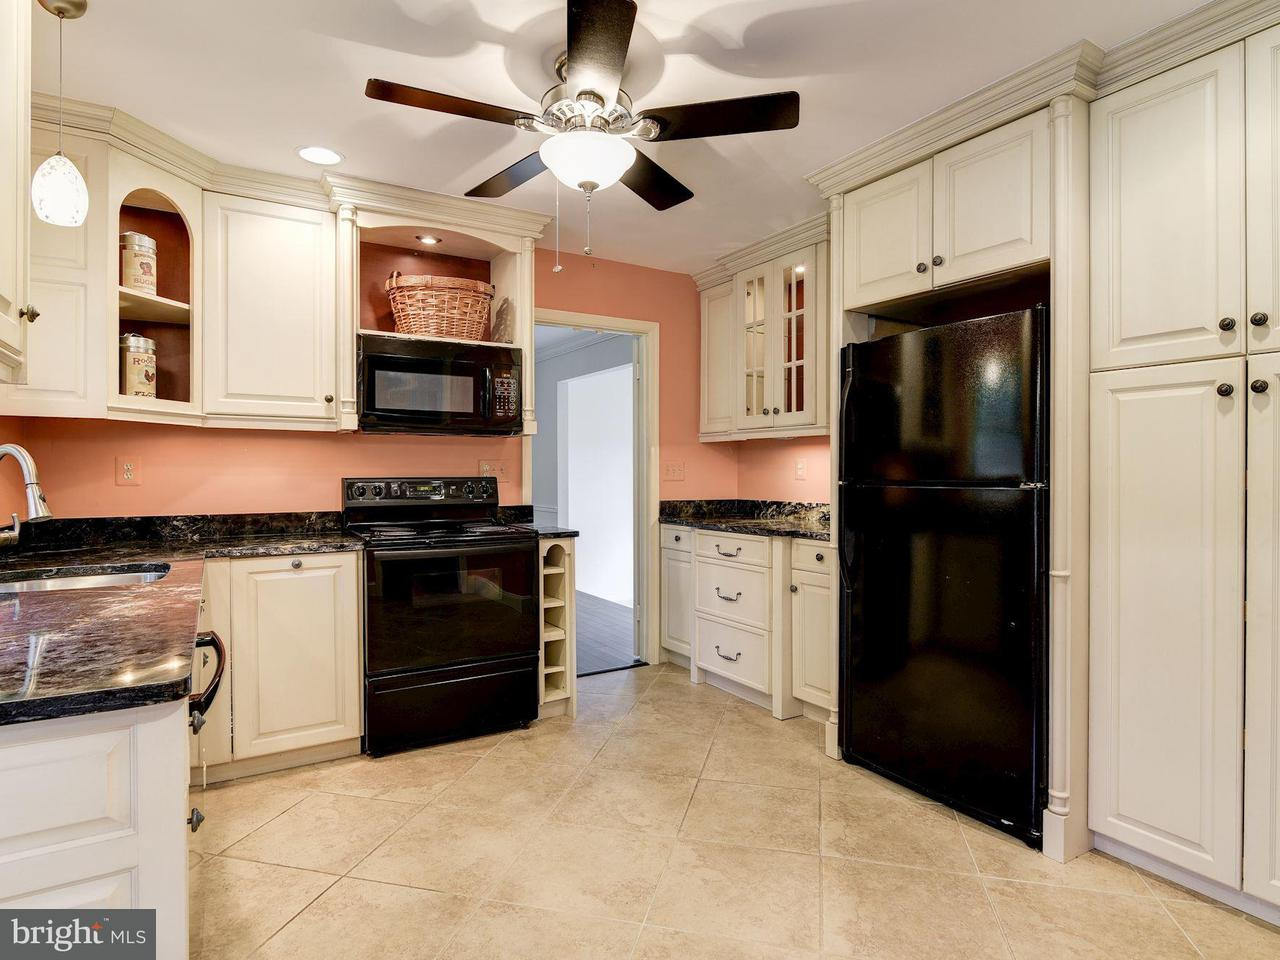 Single Family Home for Sale at 10121 GRAVIER Court 10121 GRAVIER Court Montgomery Village, Maryland 20886 United States